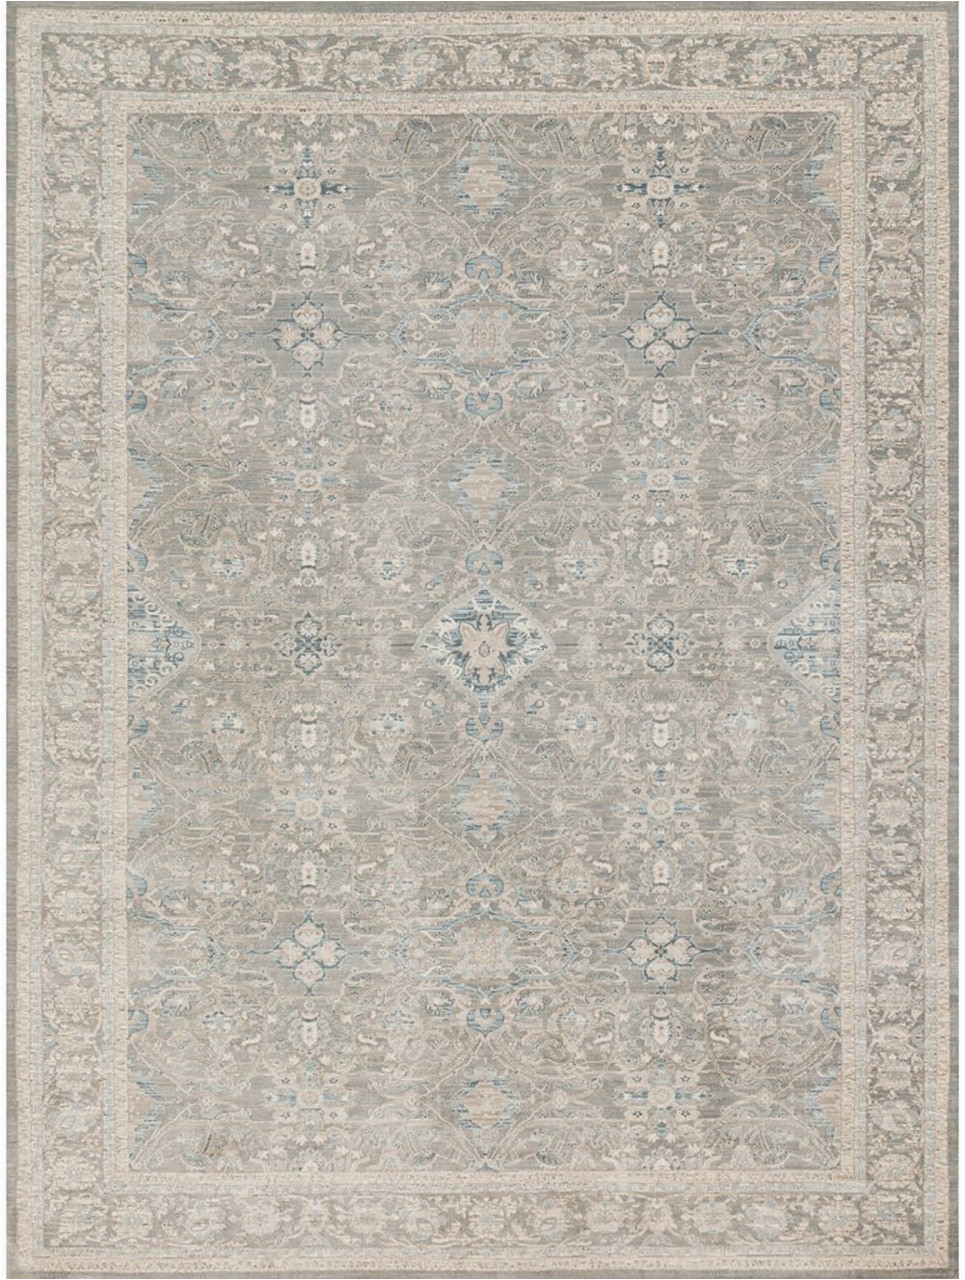 Magnolia Home Ella Rose Blue Rug Magnolia Home Ella Rose Ej 04 Steel Steel by Joanna Gaines